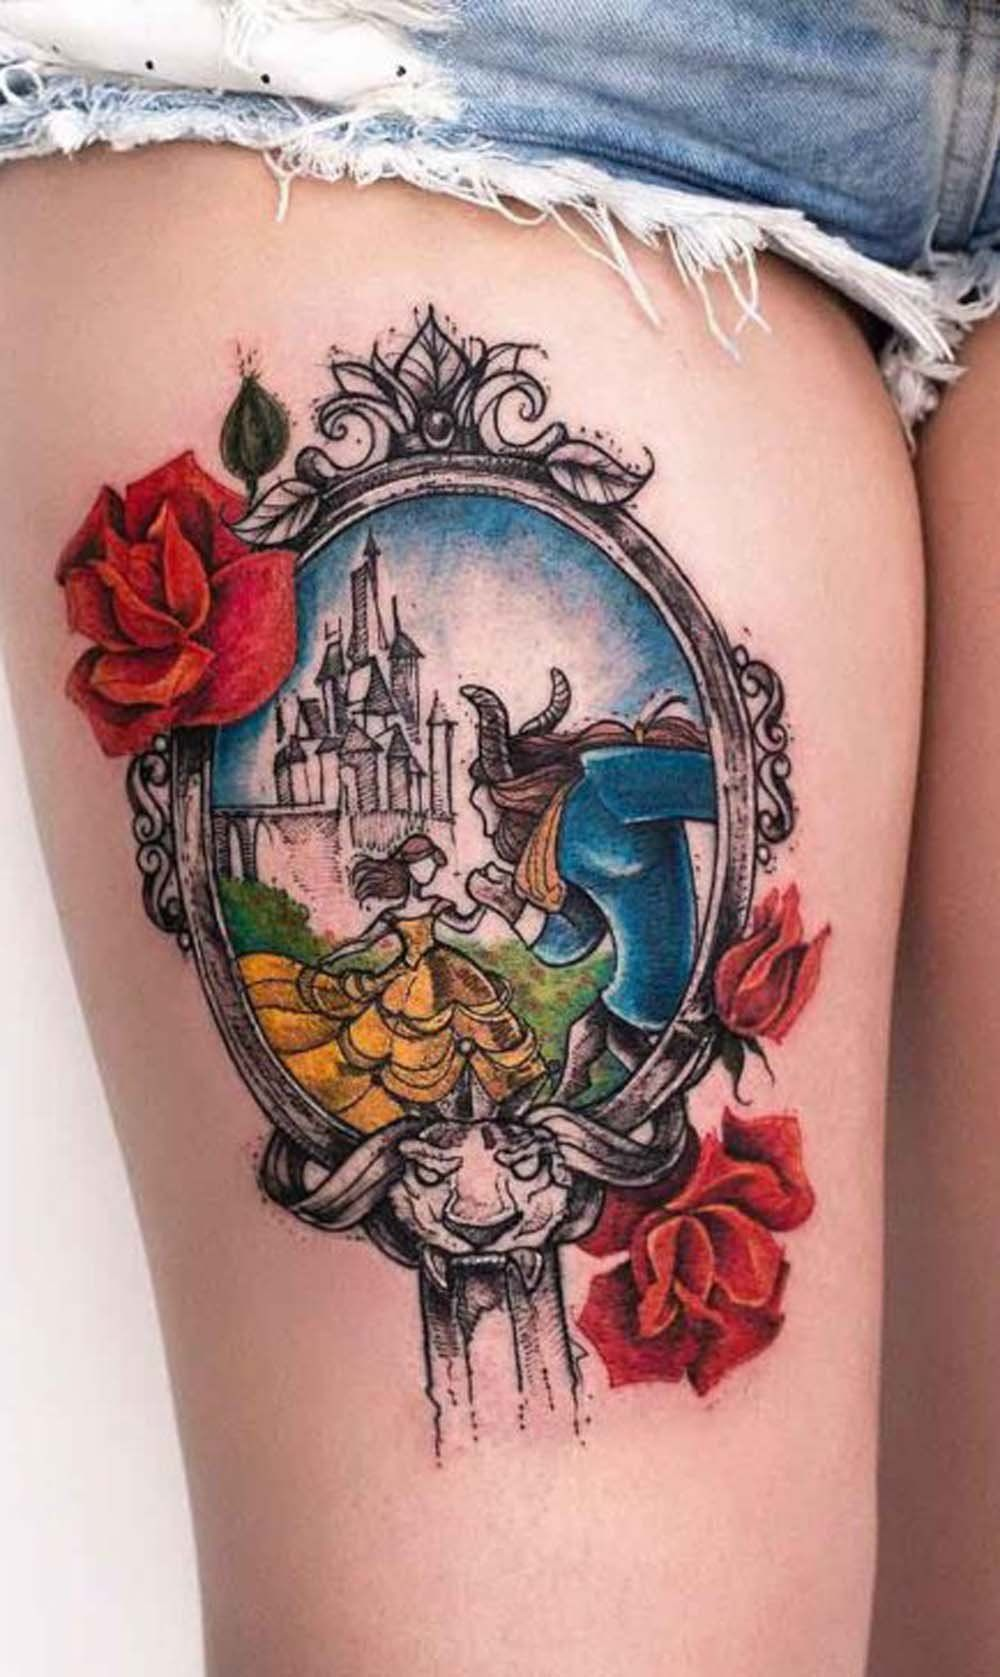 Beauty And The Beast Unique Couple Tattoos: Pin On Tattoo Inspo